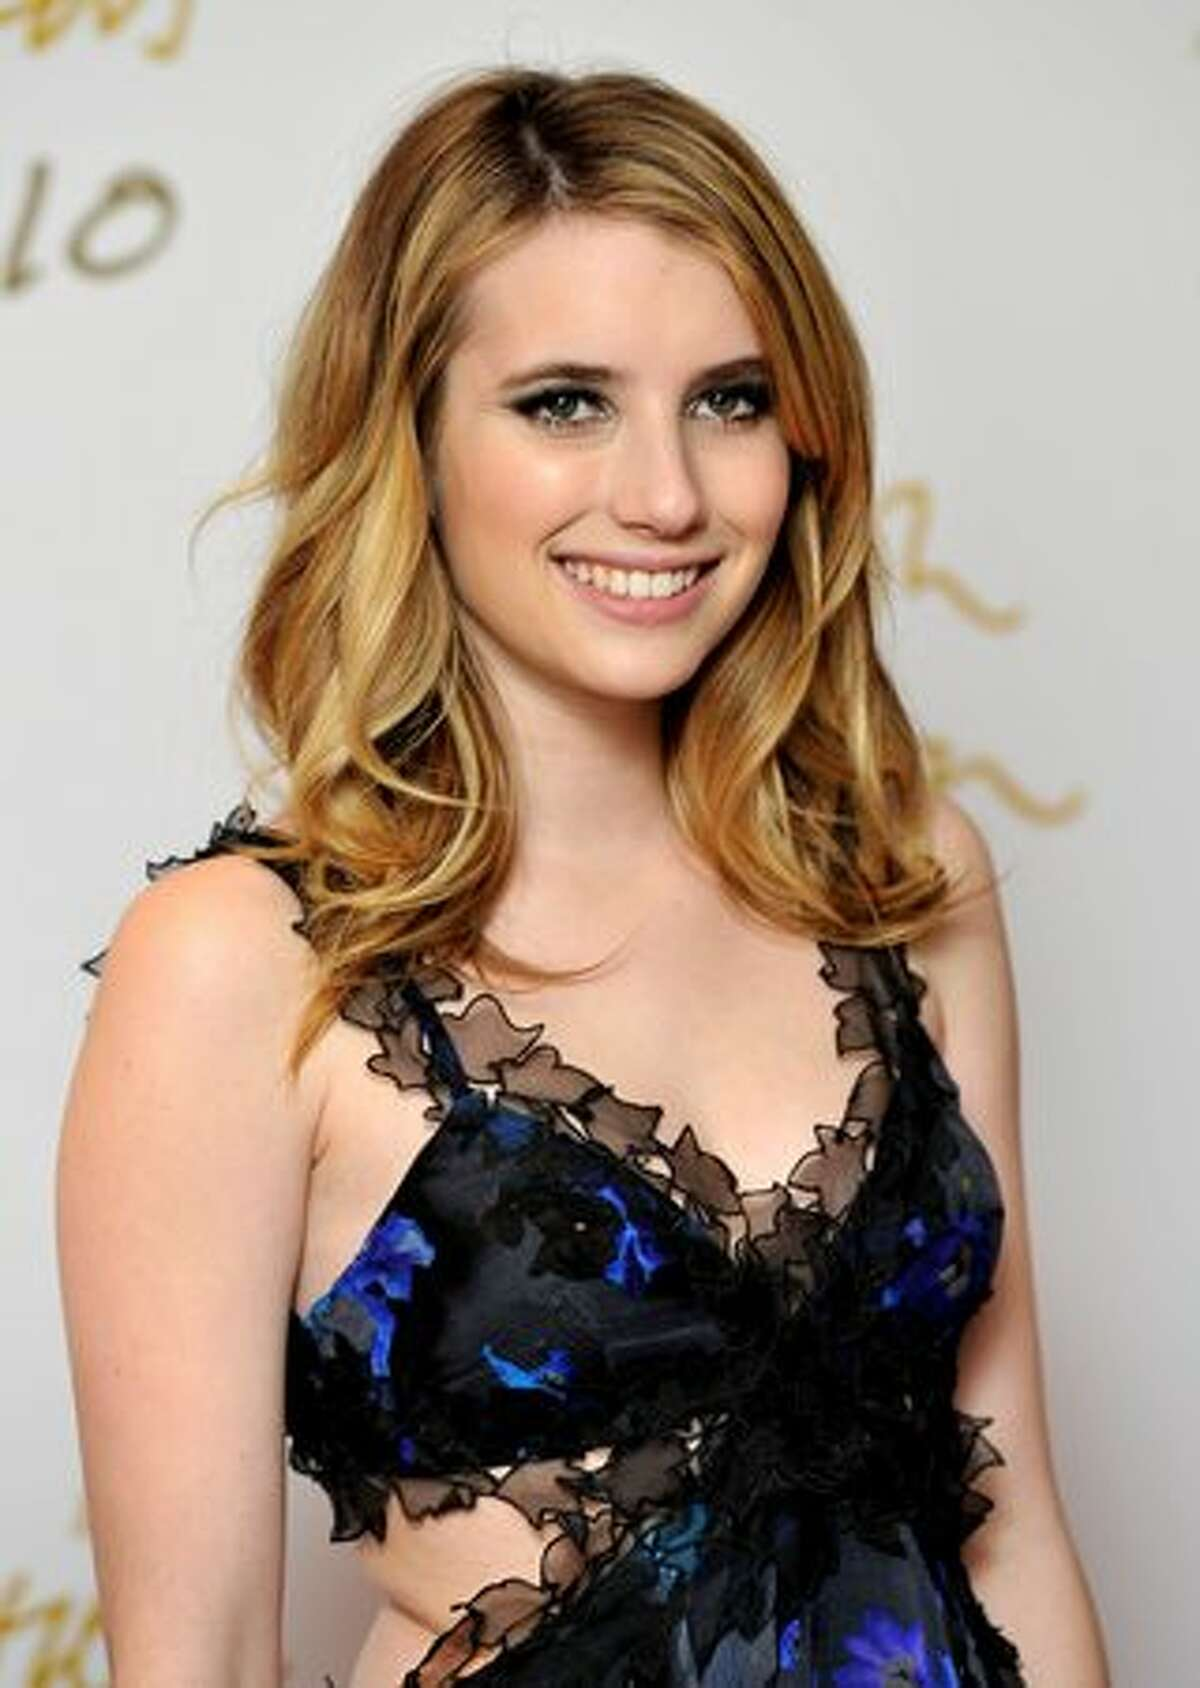 Actress Emma Roberts attends the British Fashion Awards at The Savoy in London, England.